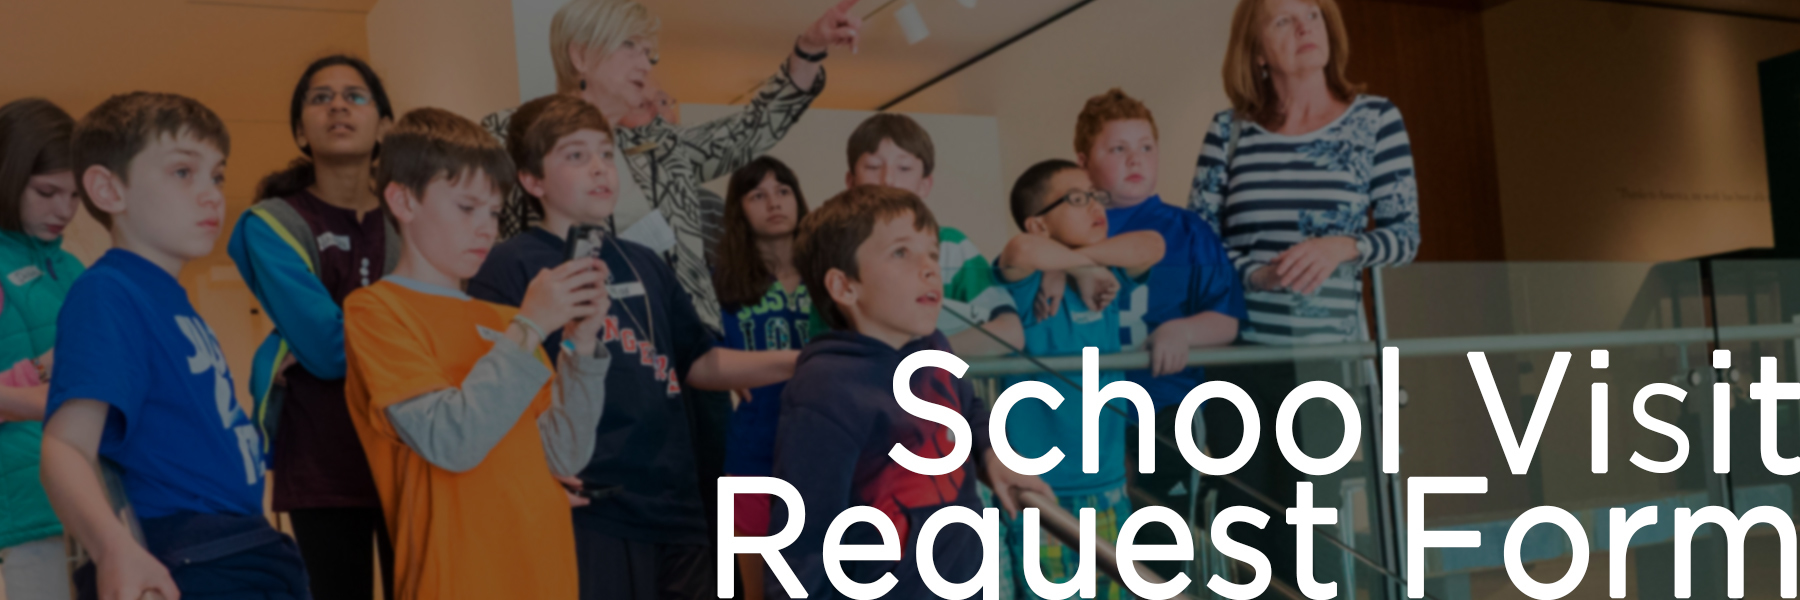 https://nbmaa.org/school-tour-request-form